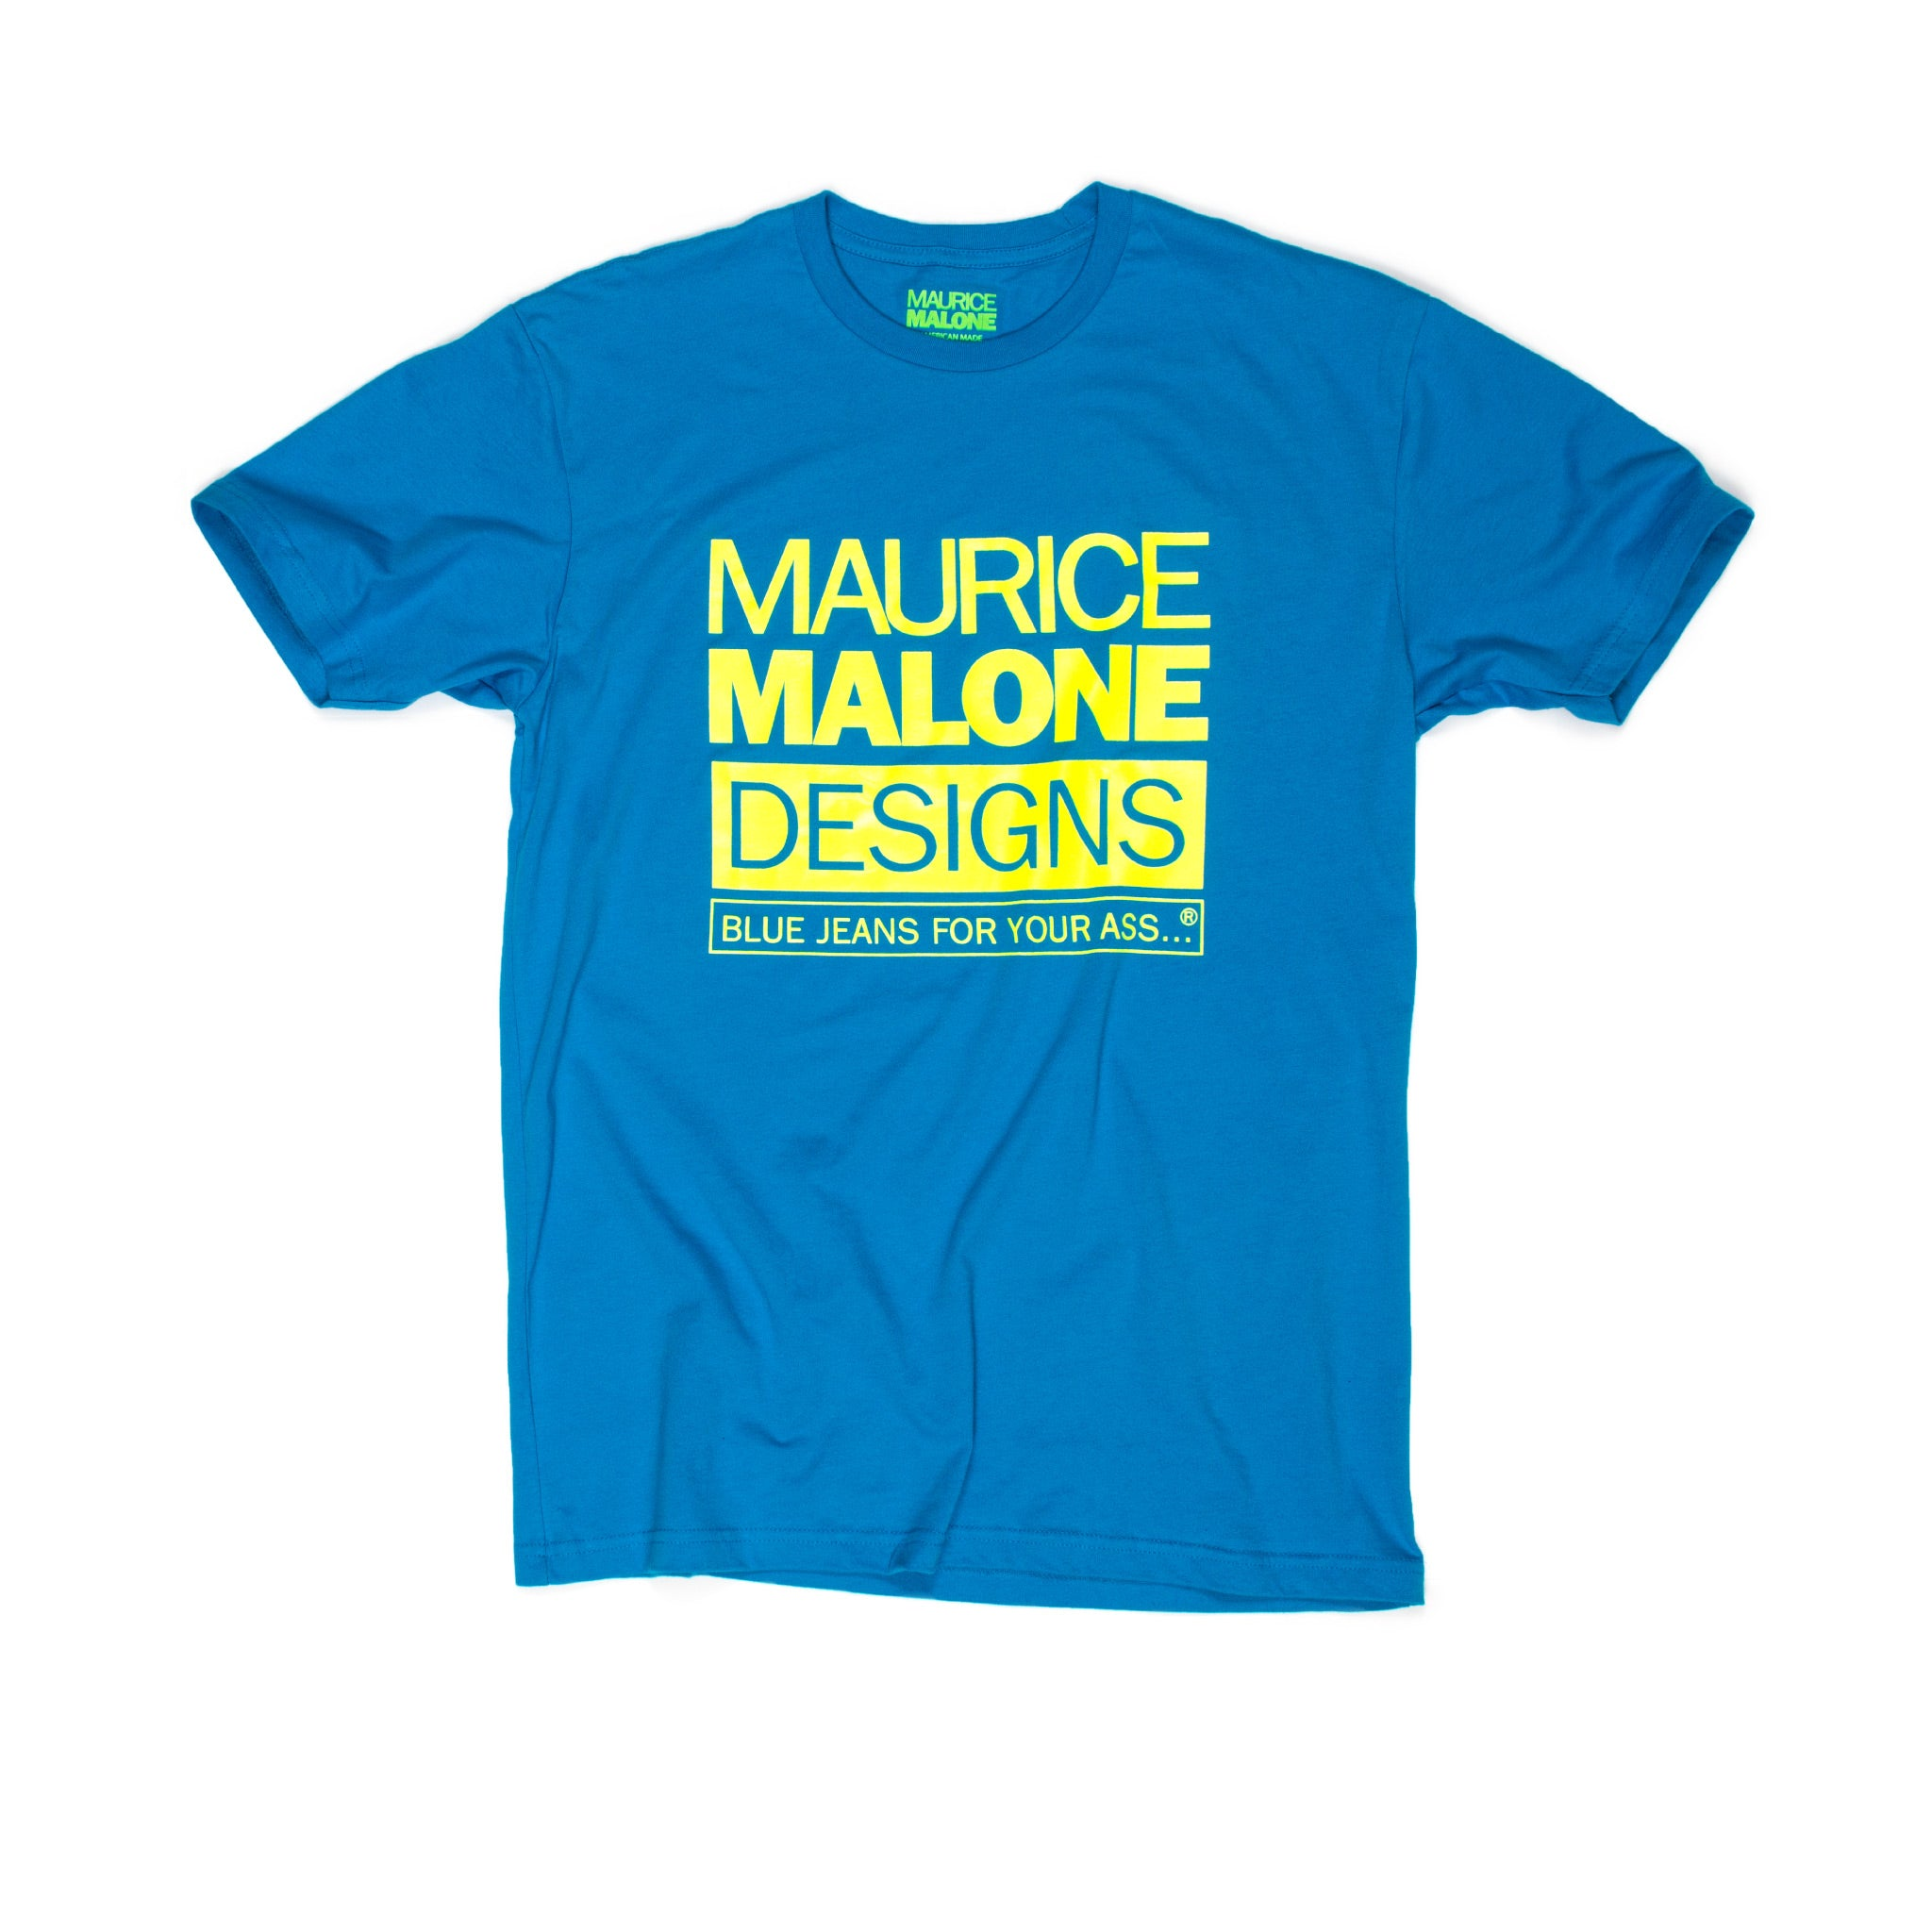 90's streetwear remake tee with blue fluorescent logo by Maurice Malone